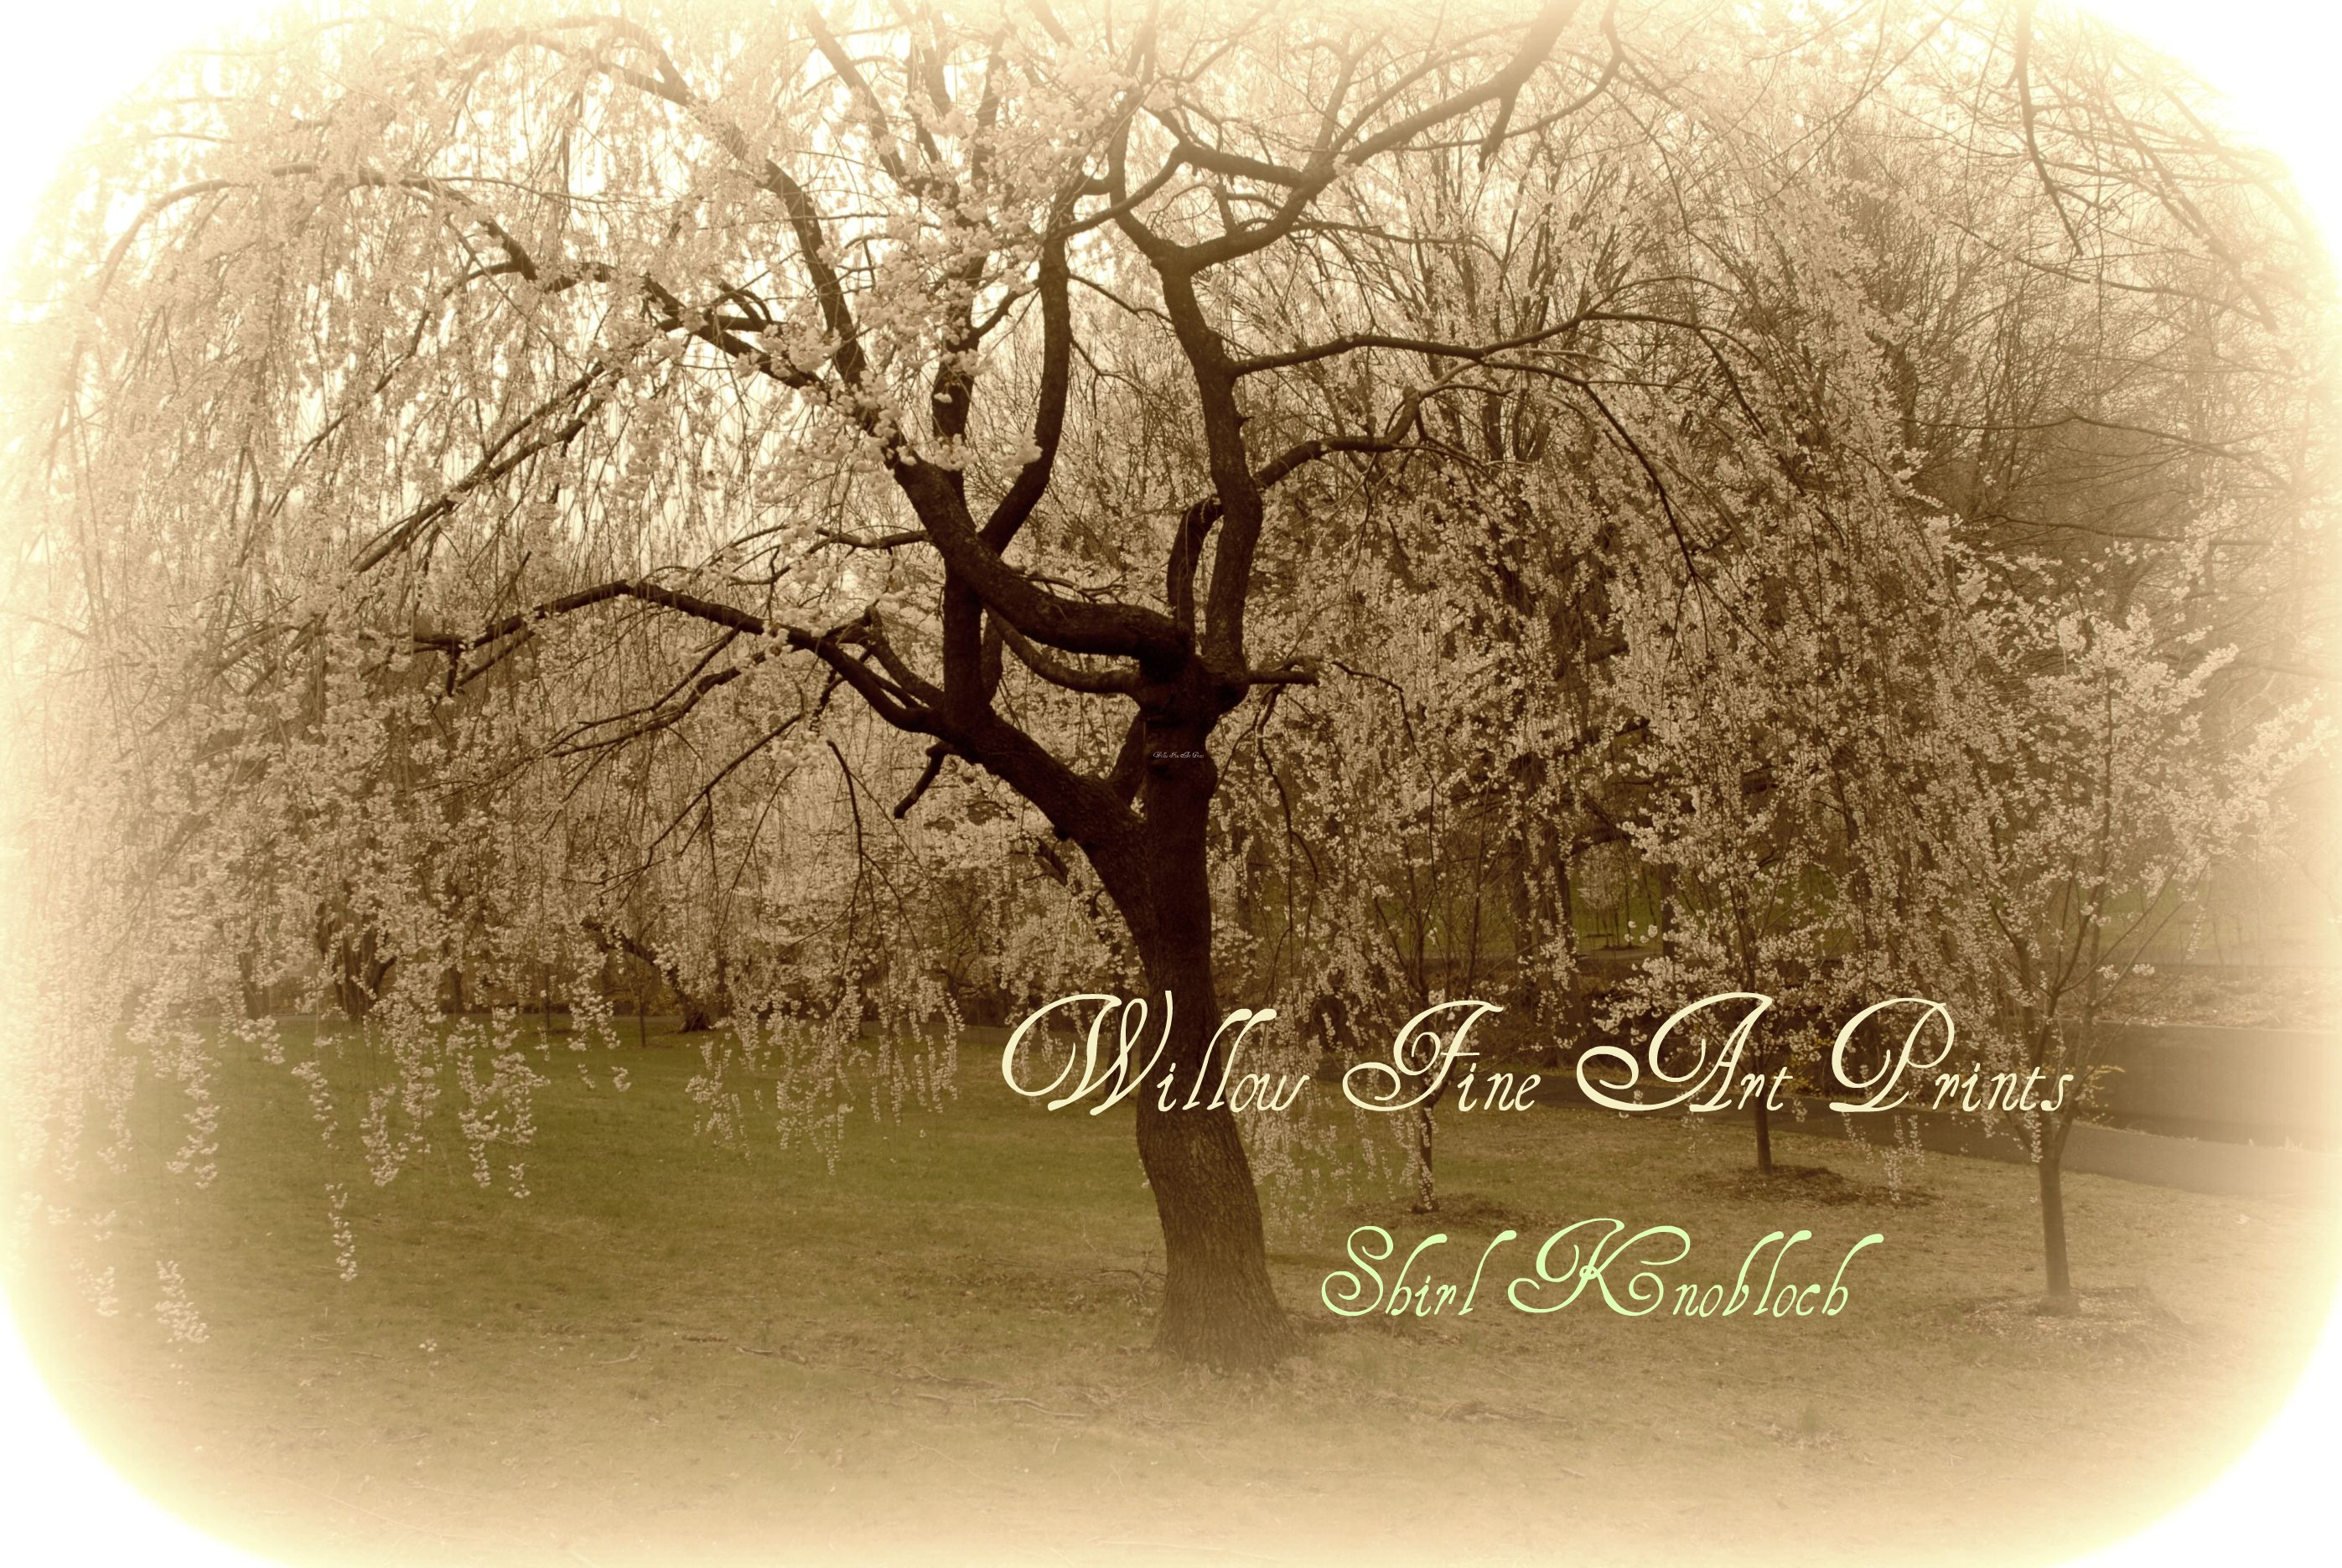 Shirl Knobloch~Willow Fine Art Prints and Photography